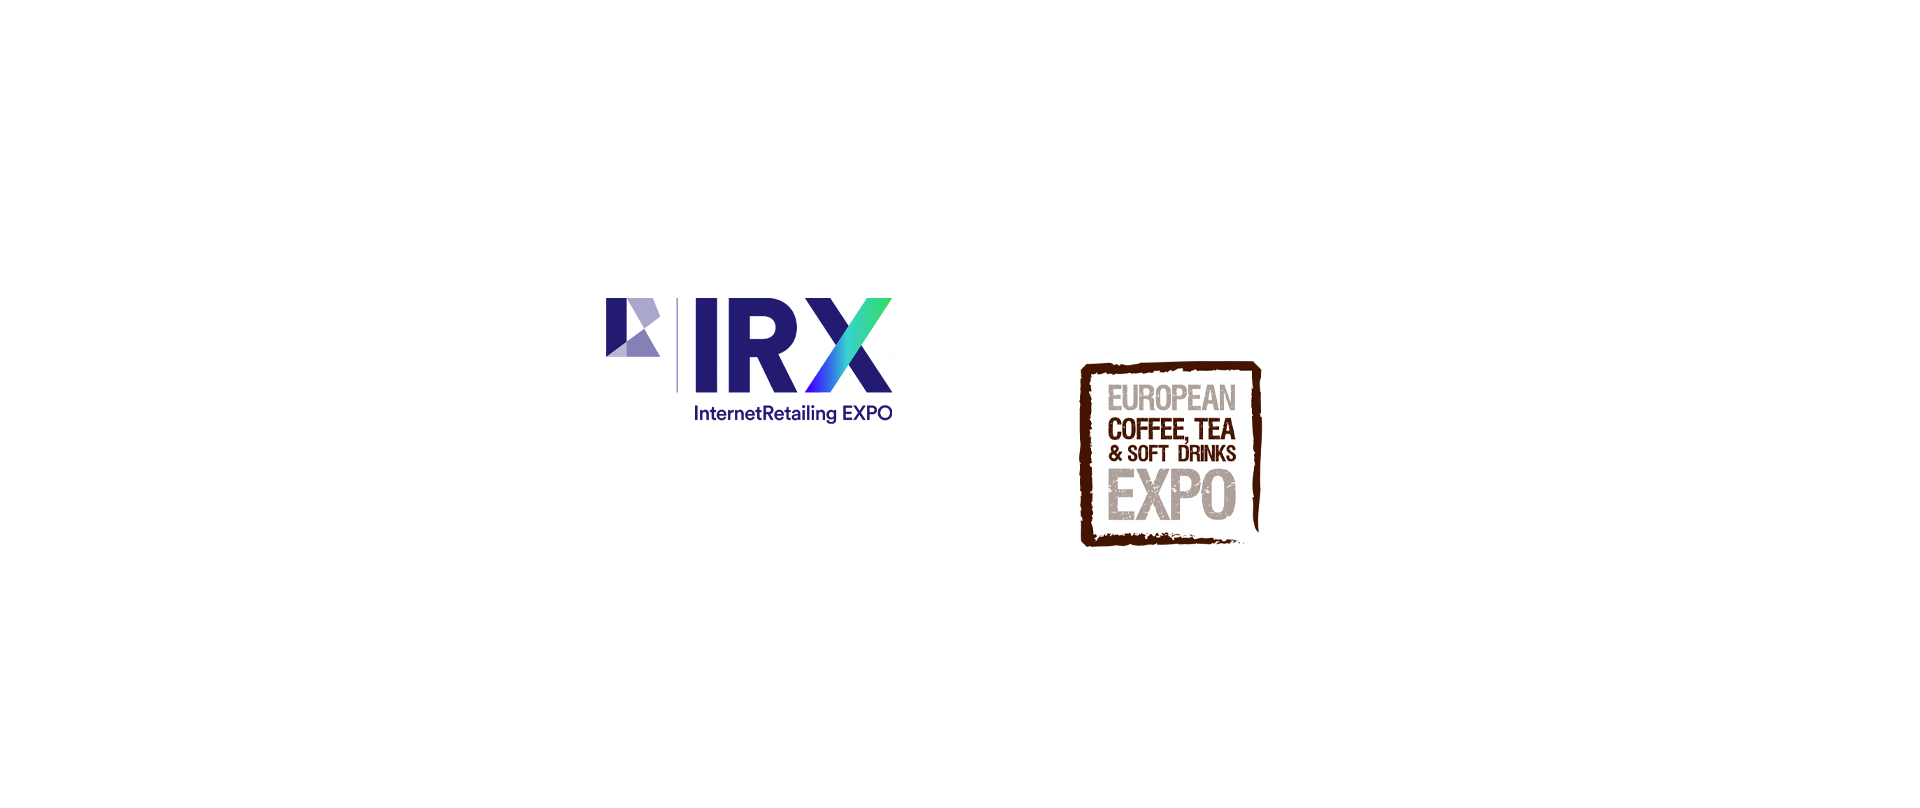 International Retail Expo and European Coffee Expo Testimonials